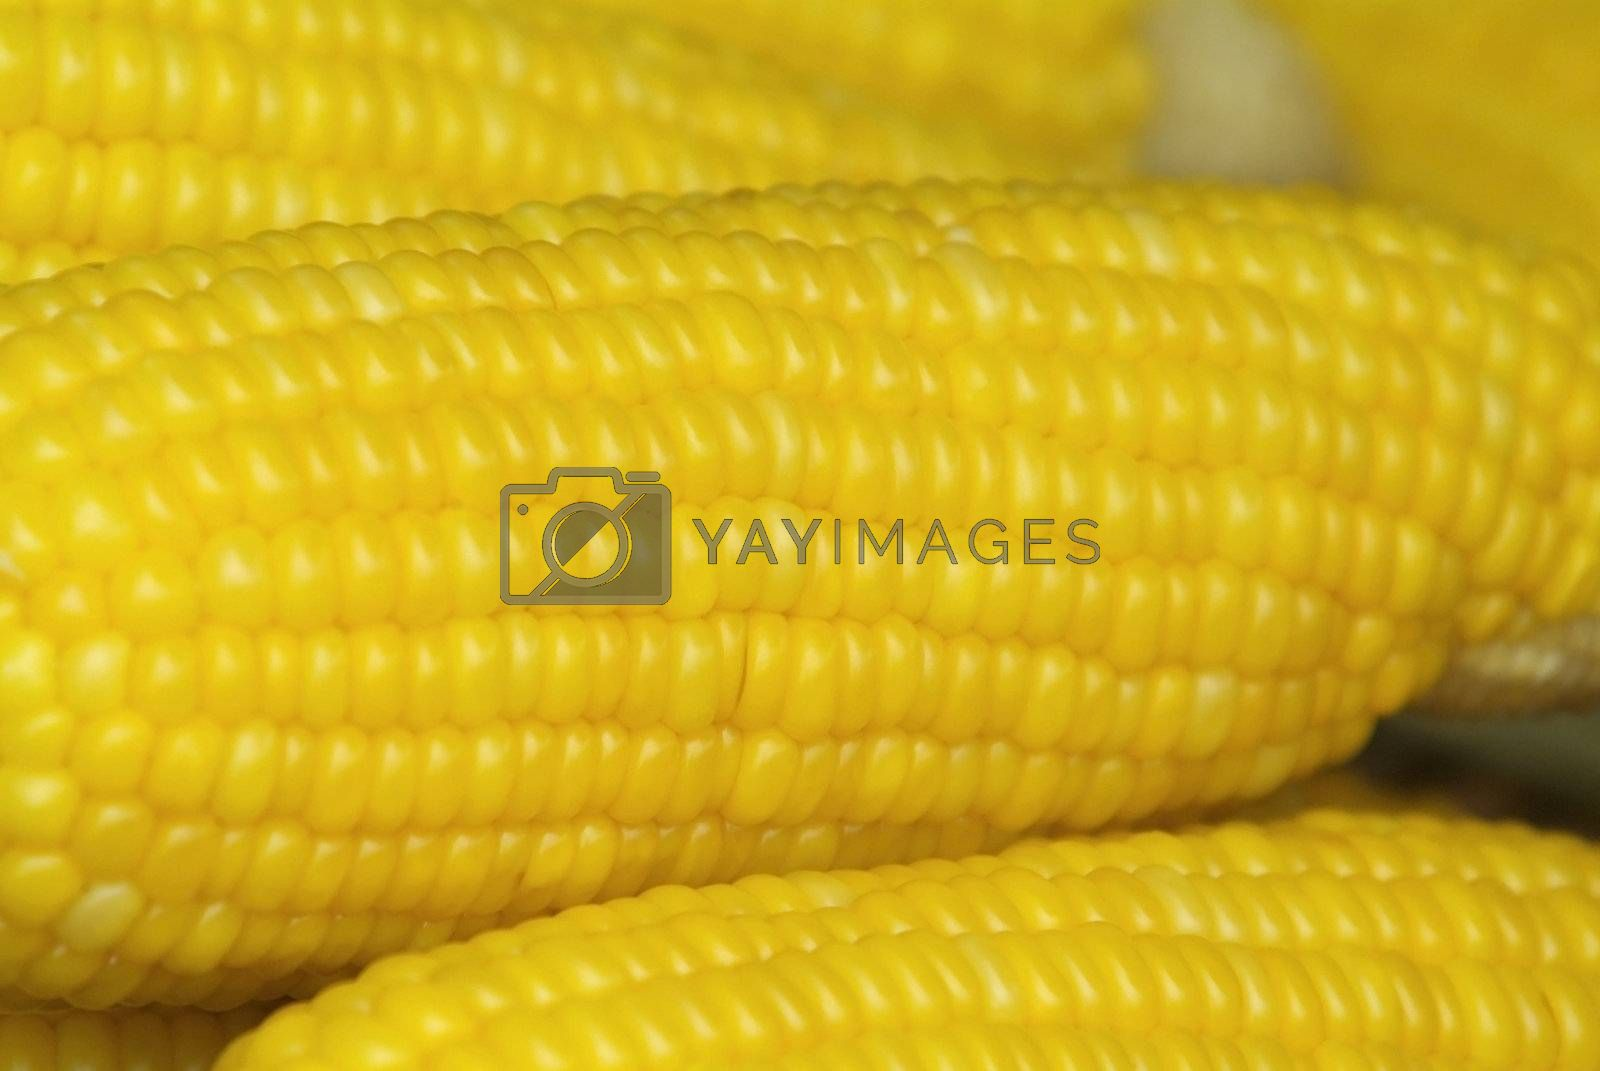 Corn on the cob abstract by epixx